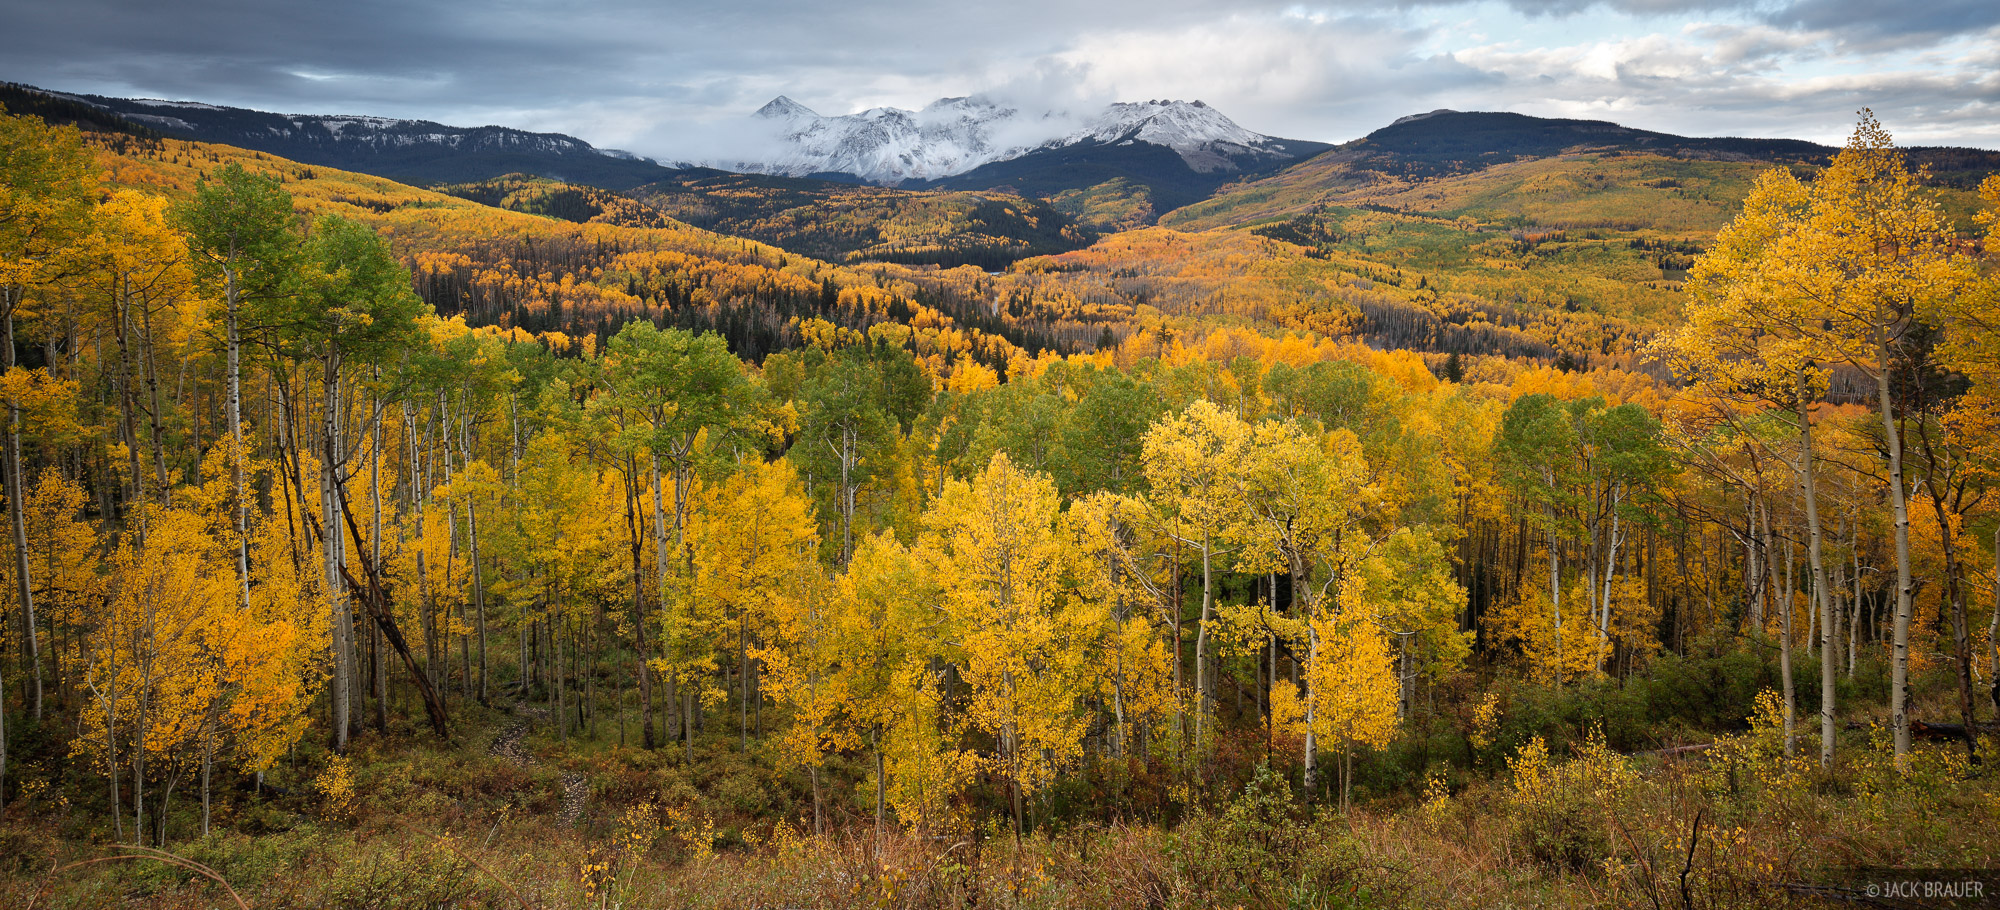 Dolores Peak, aspens, autumn, Telluride, San Juan Mountains, Colorado, photo